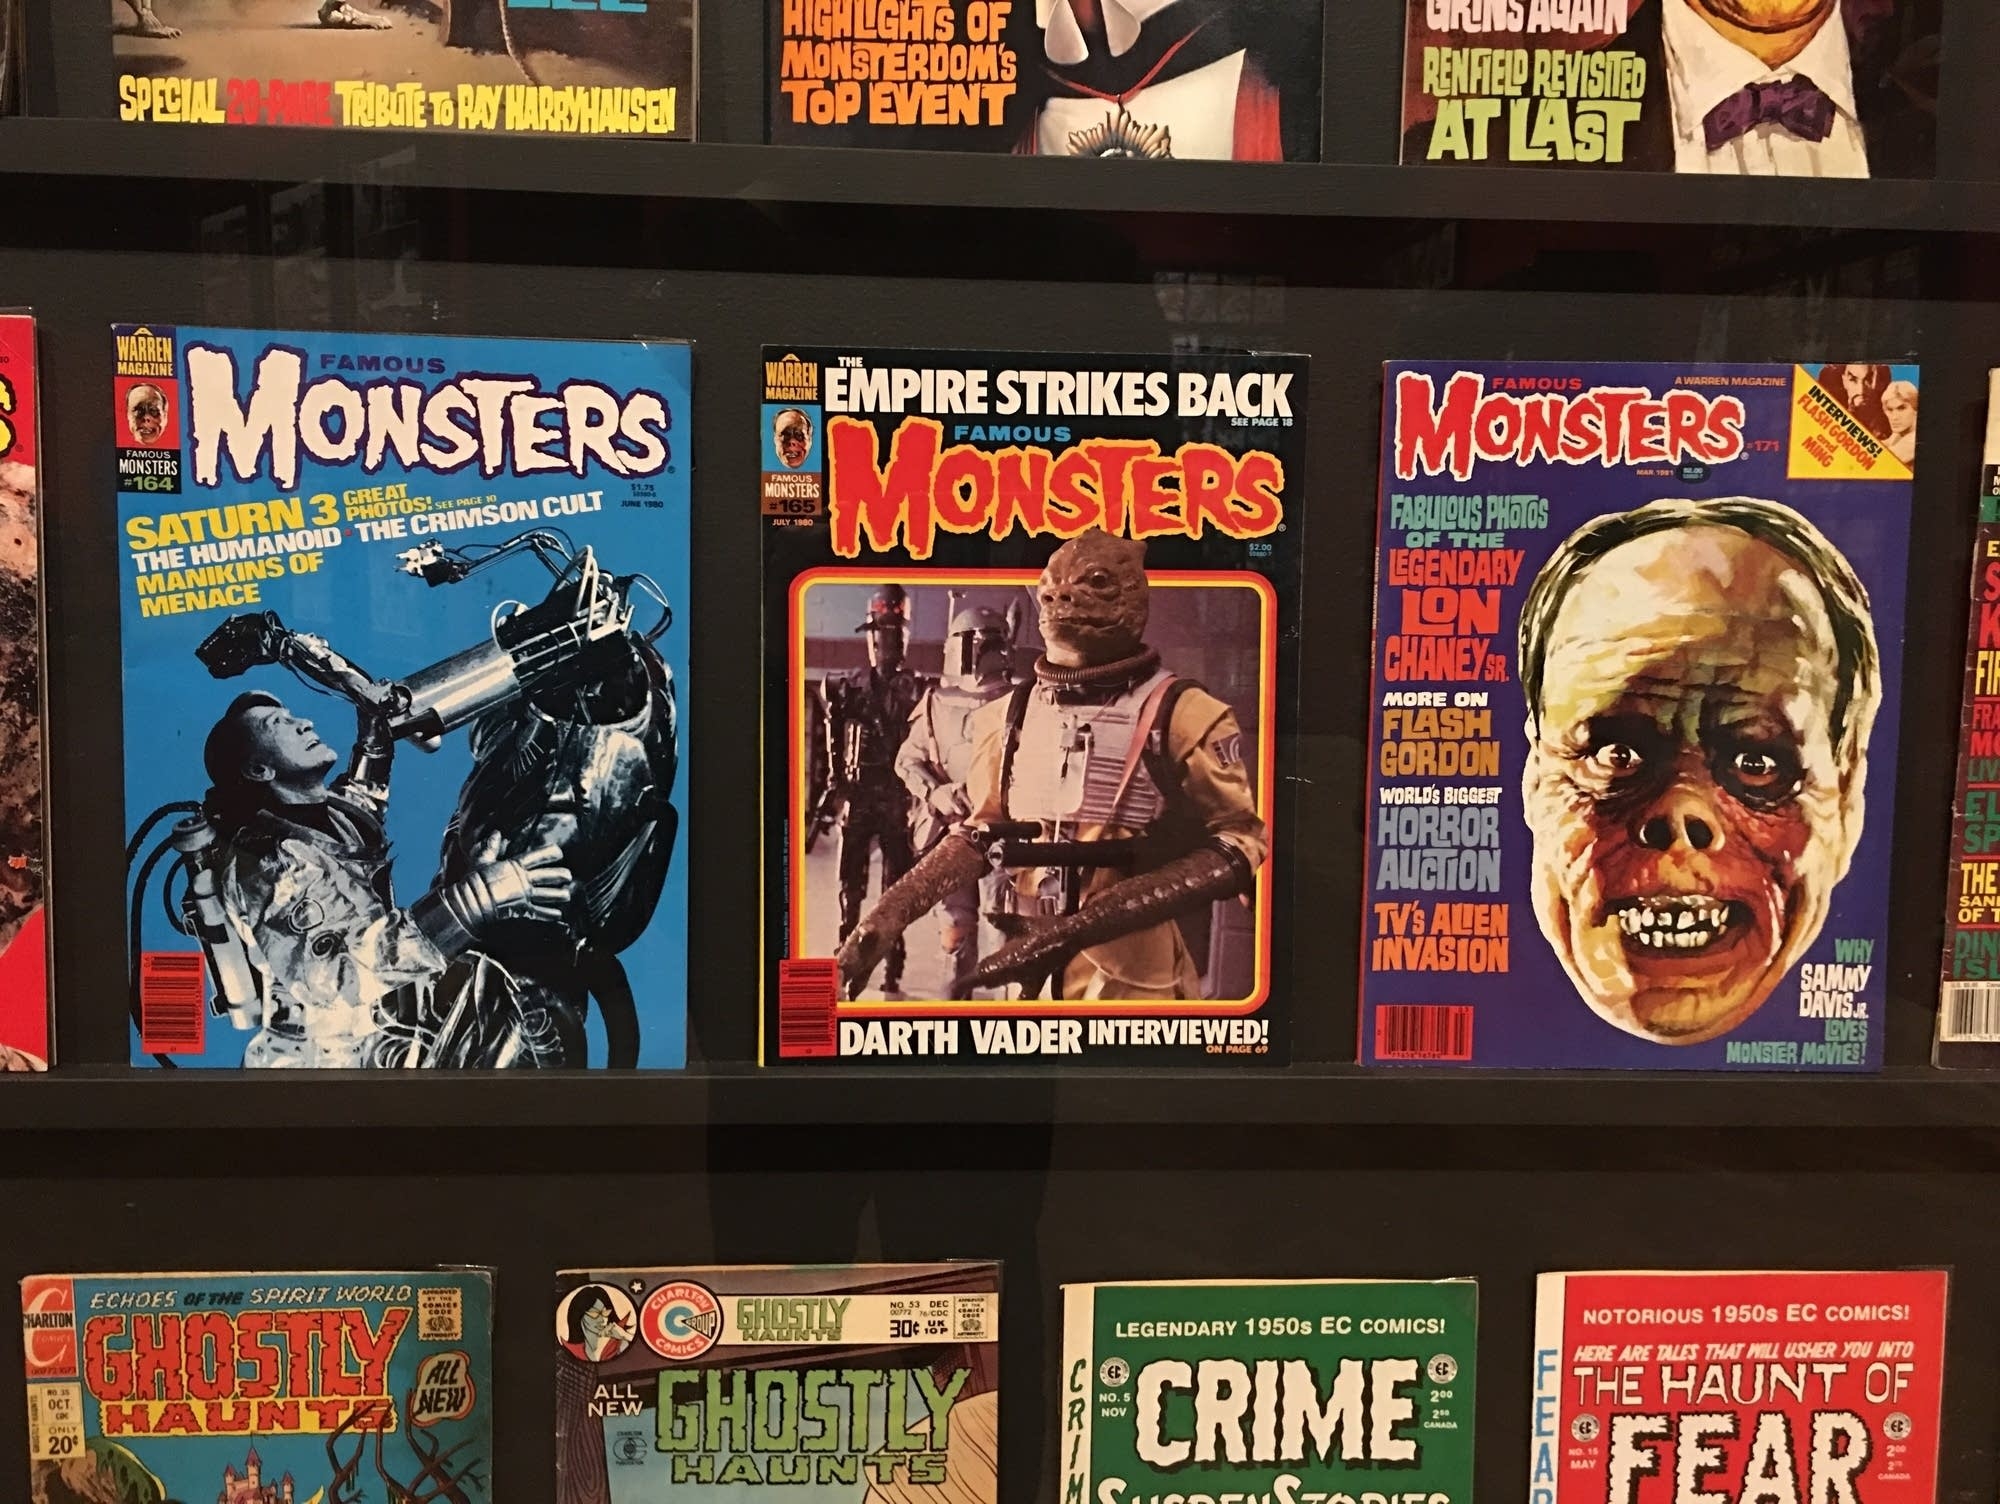 Magazines and comics from the collection of Guillermo del Toro